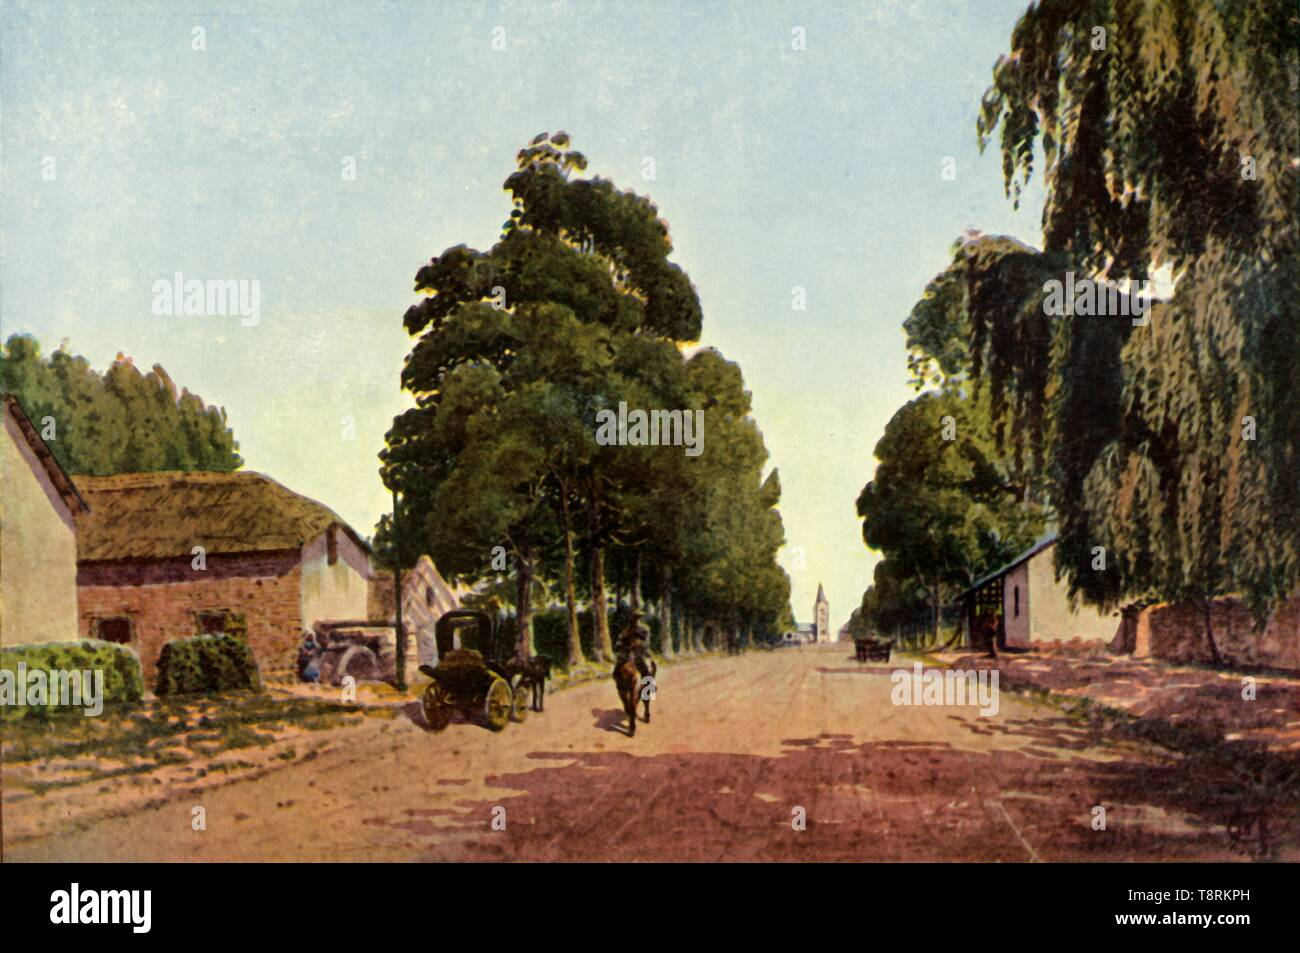 """'Church Street, Pretoria - The Approach to the Town', 1901. The town of Pretoria in the South African Republic, (now South Africa) during the period of the Boer Wars. The city surrendered to British forces under Frederick Roberts on 5 June 1900. From """"The Life and Deeds of Earl Roberts, Vol. IV. - To Lord Roberts's Reign in Pall Mall"""", by J. Maclaren Cobban. [T. C. & E. C. Jack, Edinburgh, 1901] - Stock Image"""